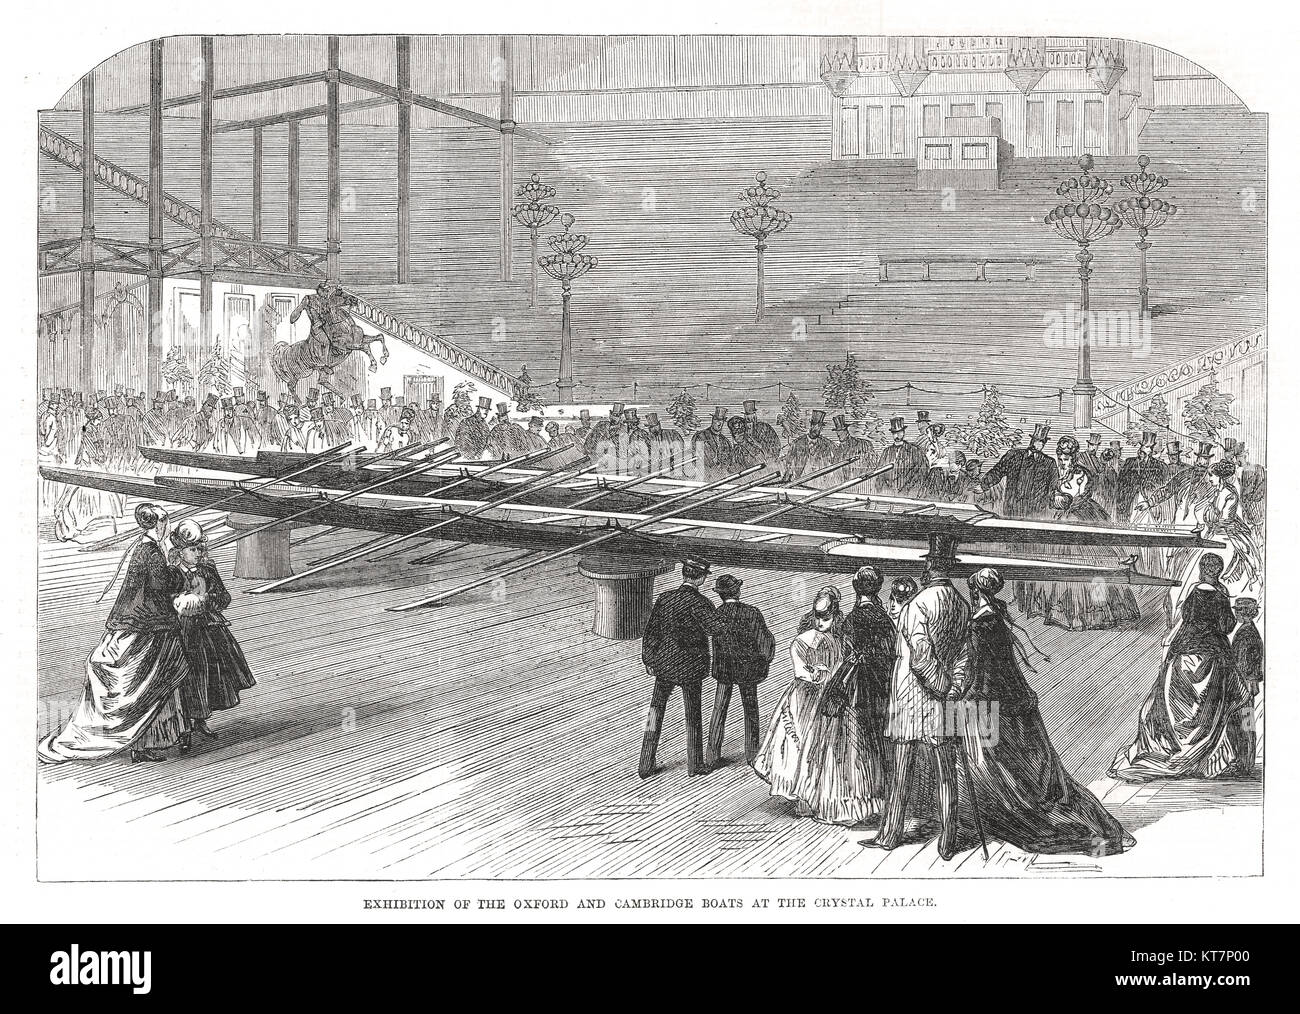 Oxford e Cambridge barche Boat Race mostra, Crystal Palace, 1869 Immagini Stock